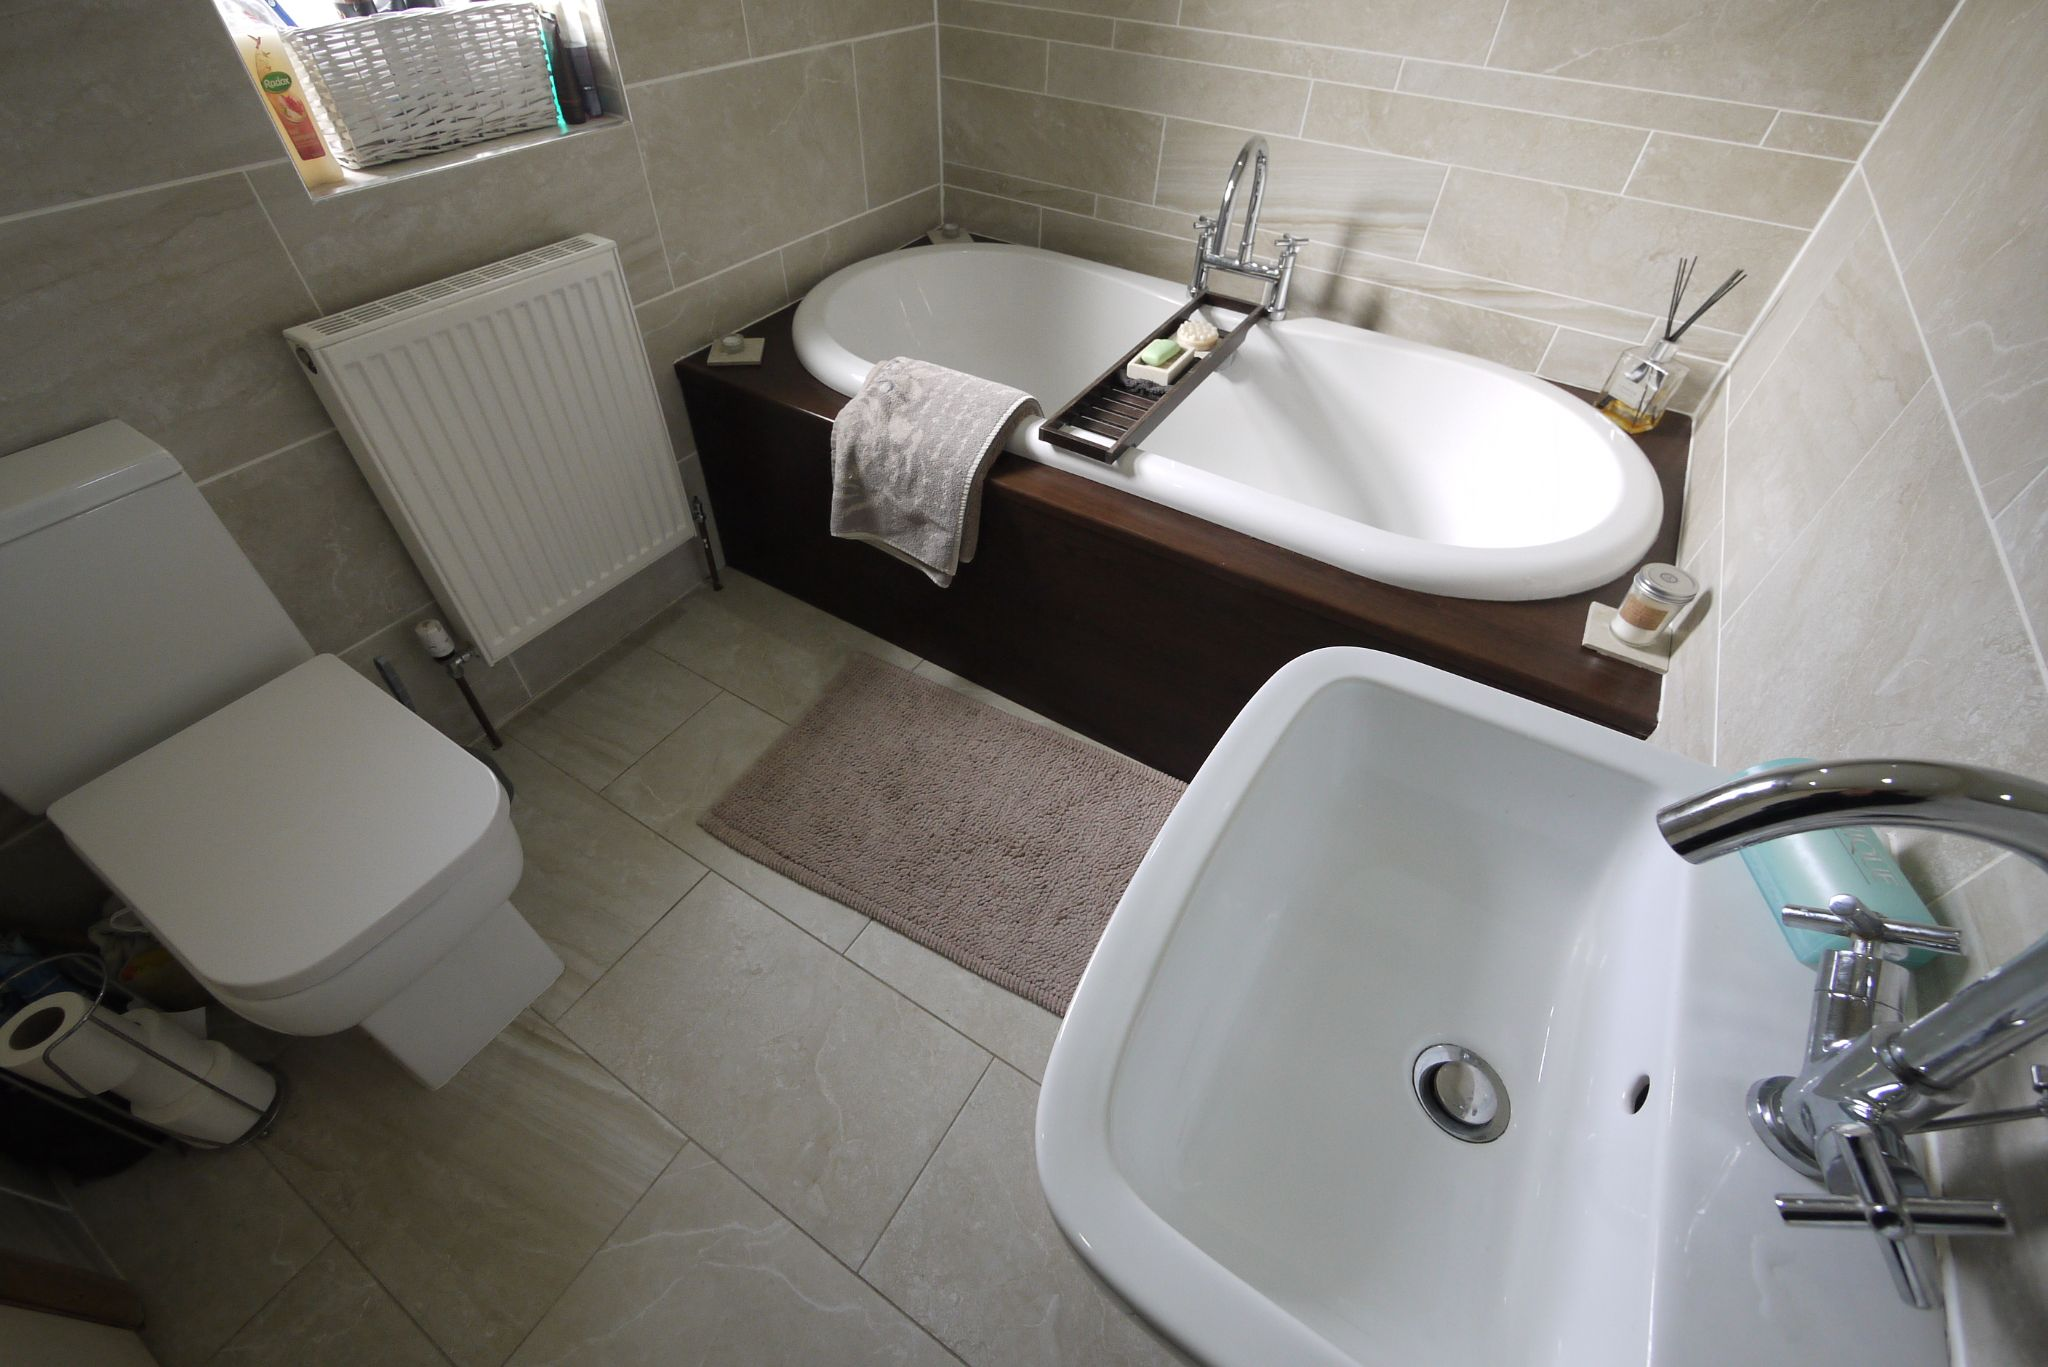 4 bedroom detached house SSTC in Brighouse - Bathroom.